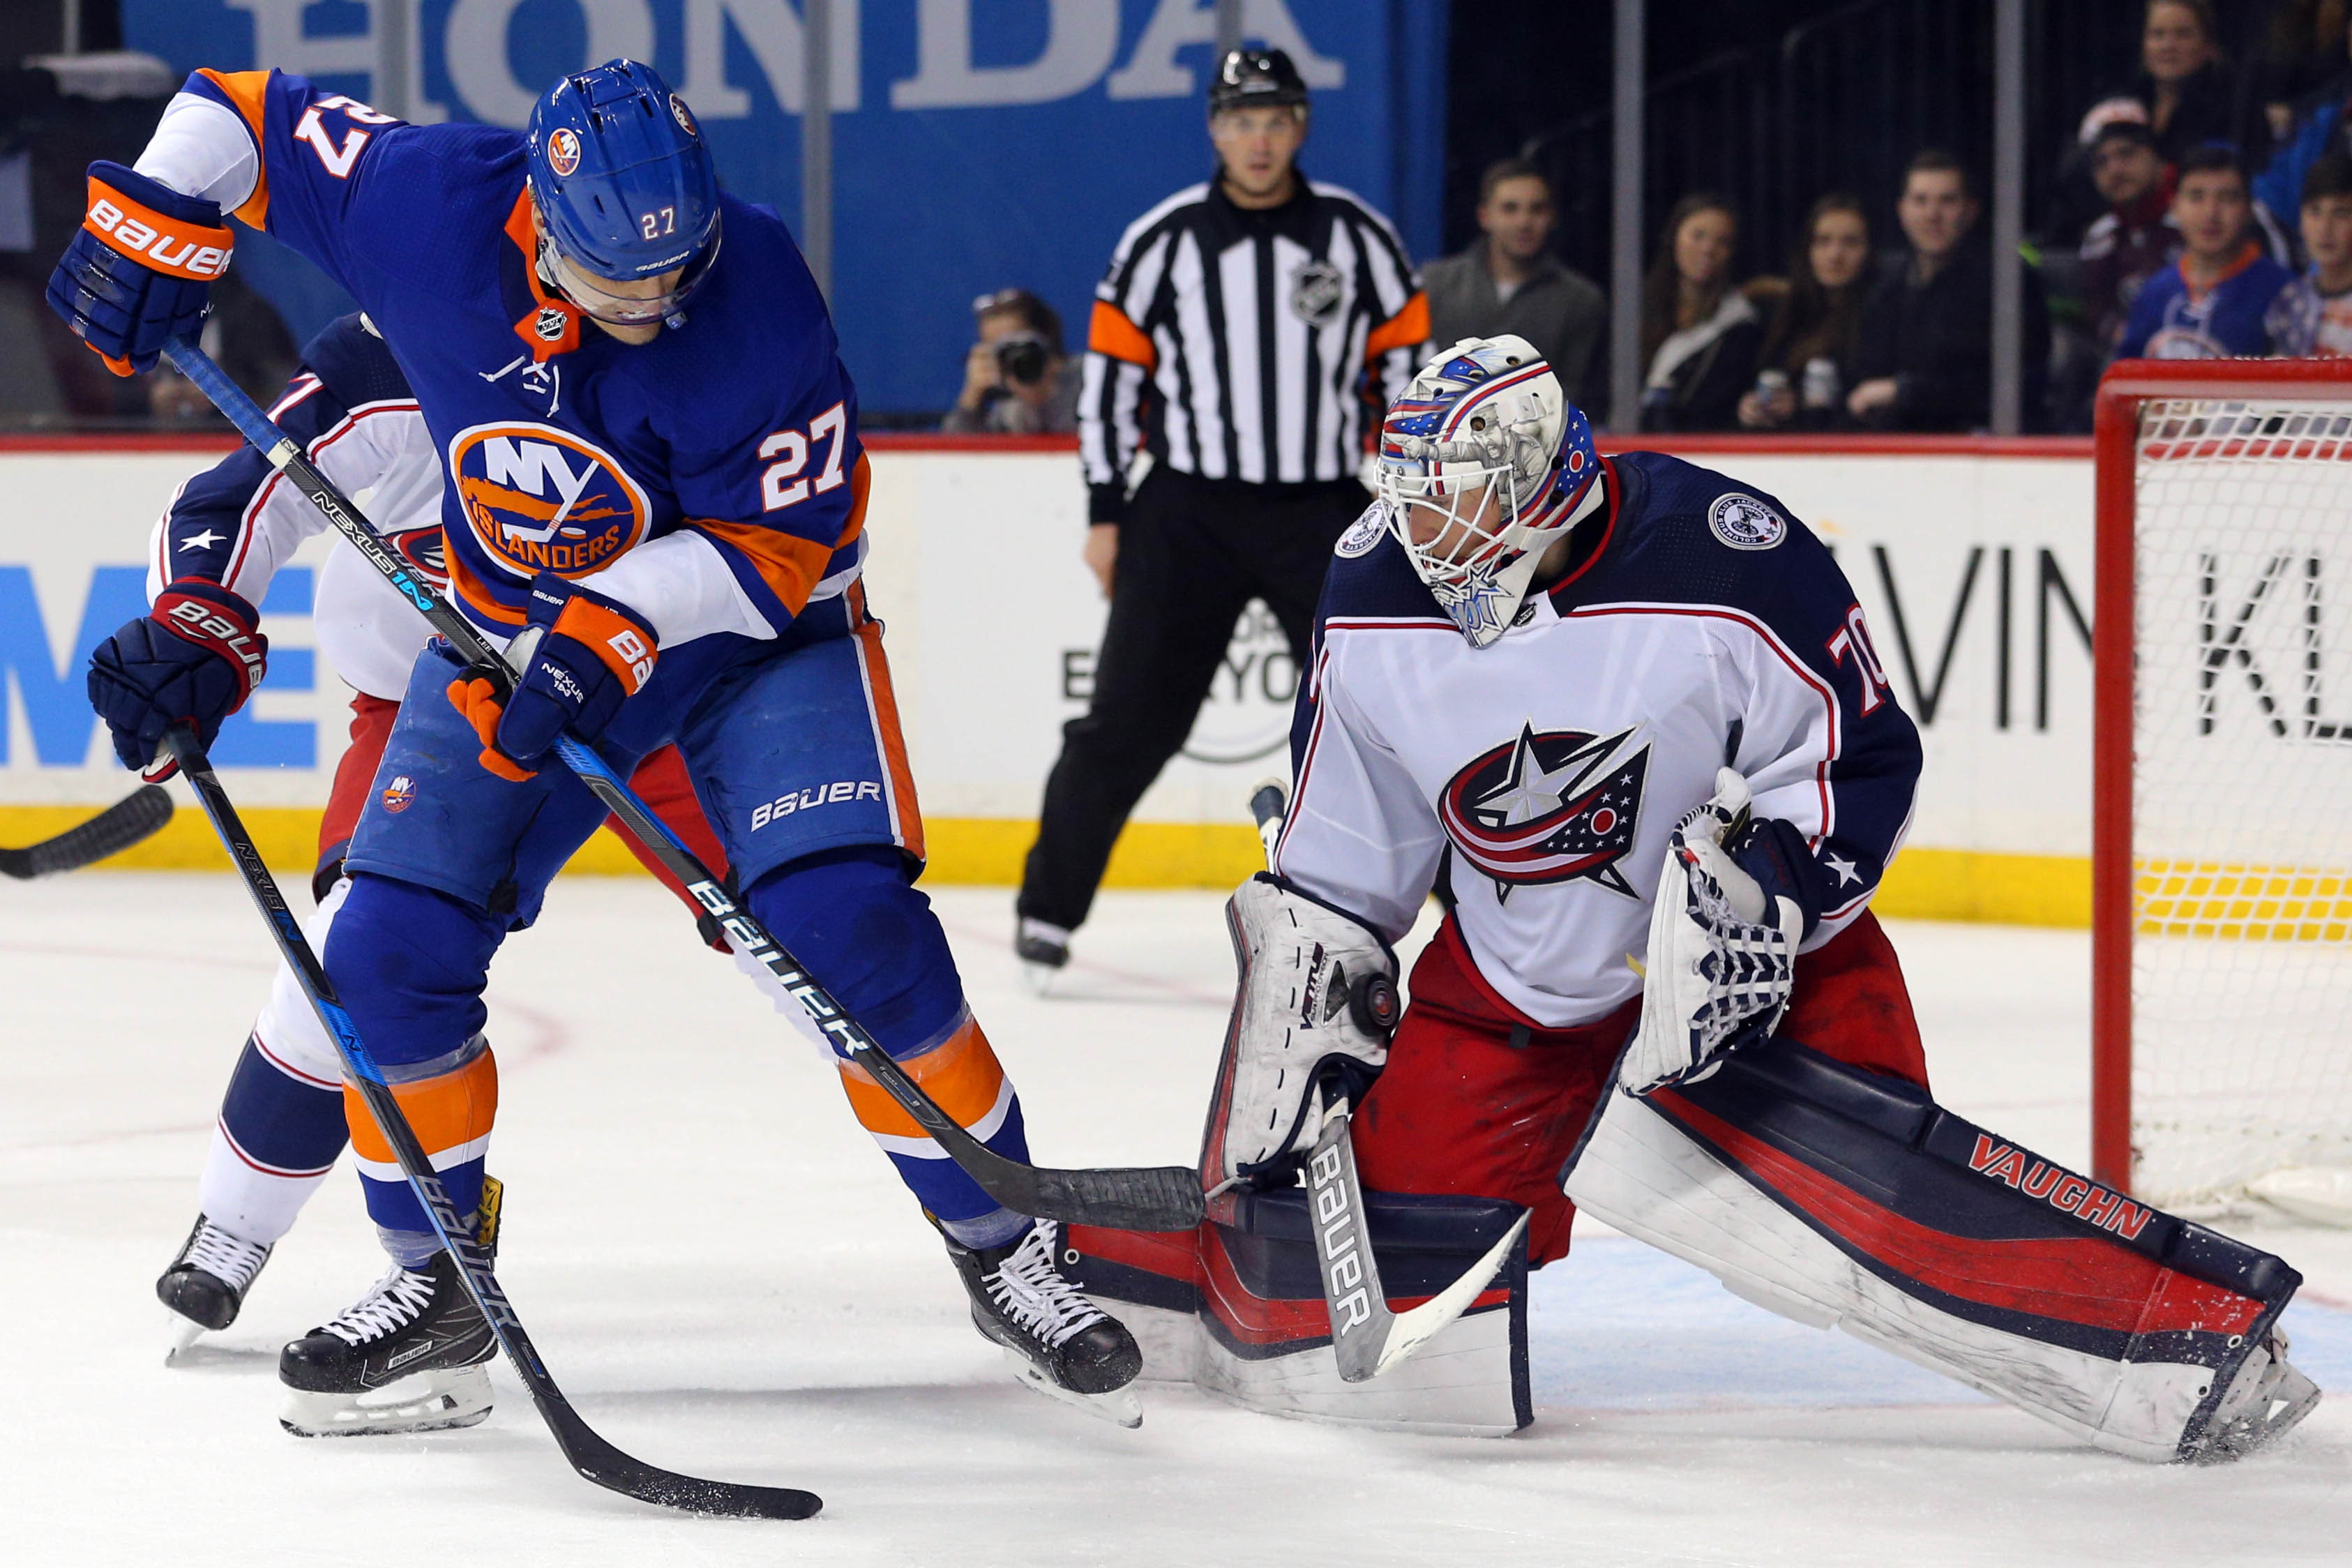 Feb 3, 2018; Brooklyn, NY, USA; Columbus Blue Jackets goalie Joonas Korpisalo (70) makes a save against New York Islanders center Anders Lee (27) during the second period at Barclays Center. Mandatory Credit: Brad Penner-USA TODAY Sports